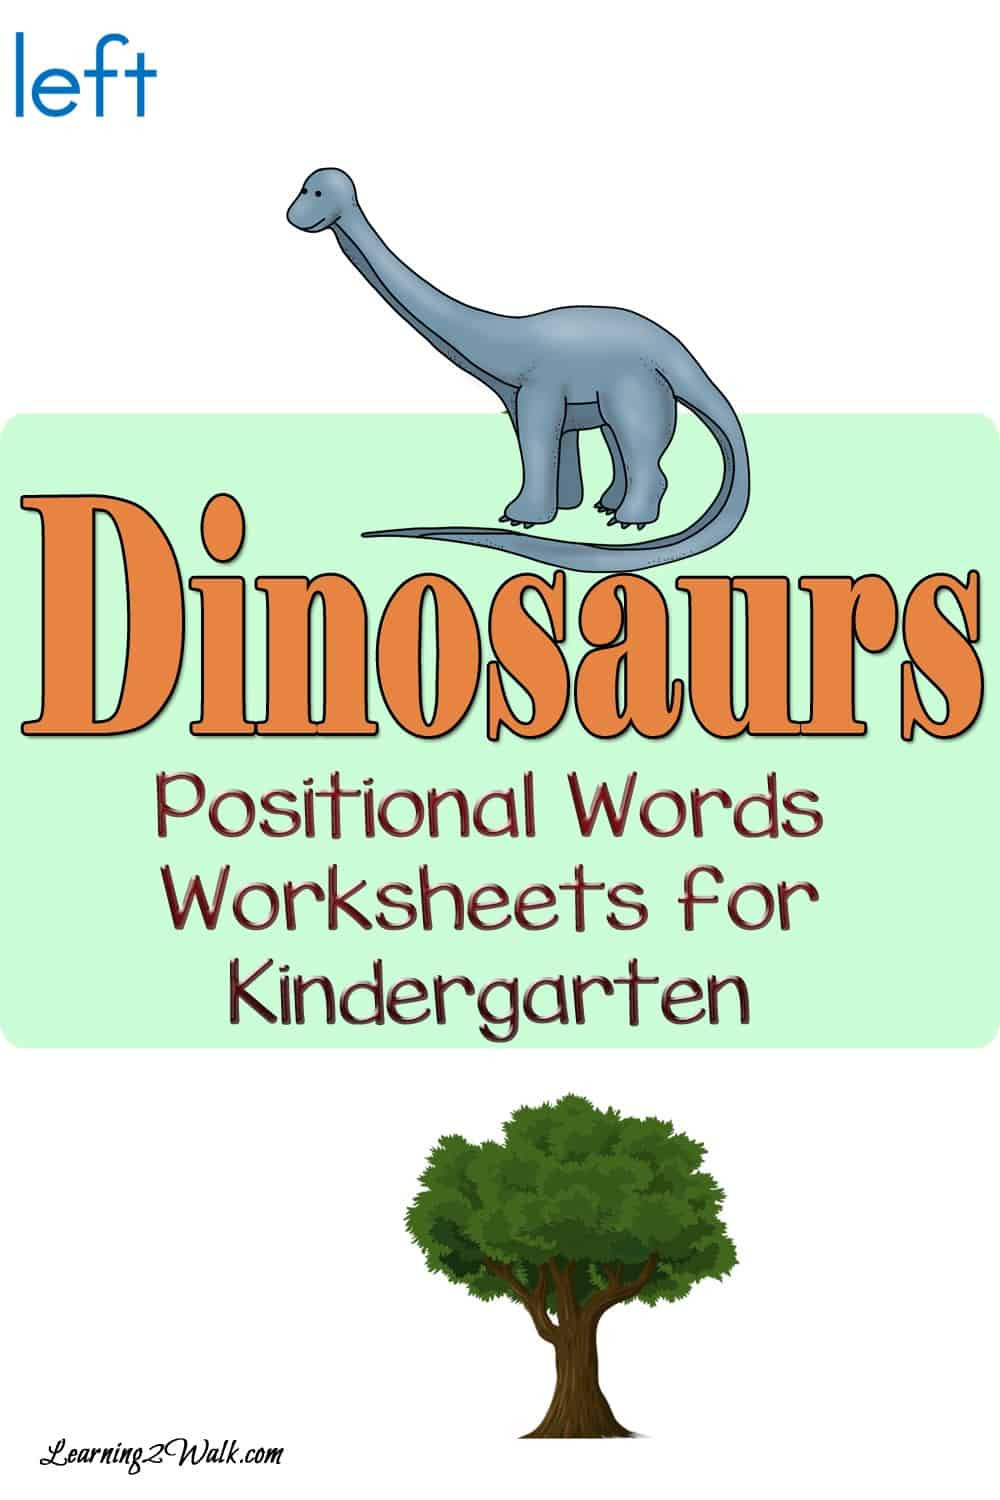 Dinosaur Worksheets for Kindergarten